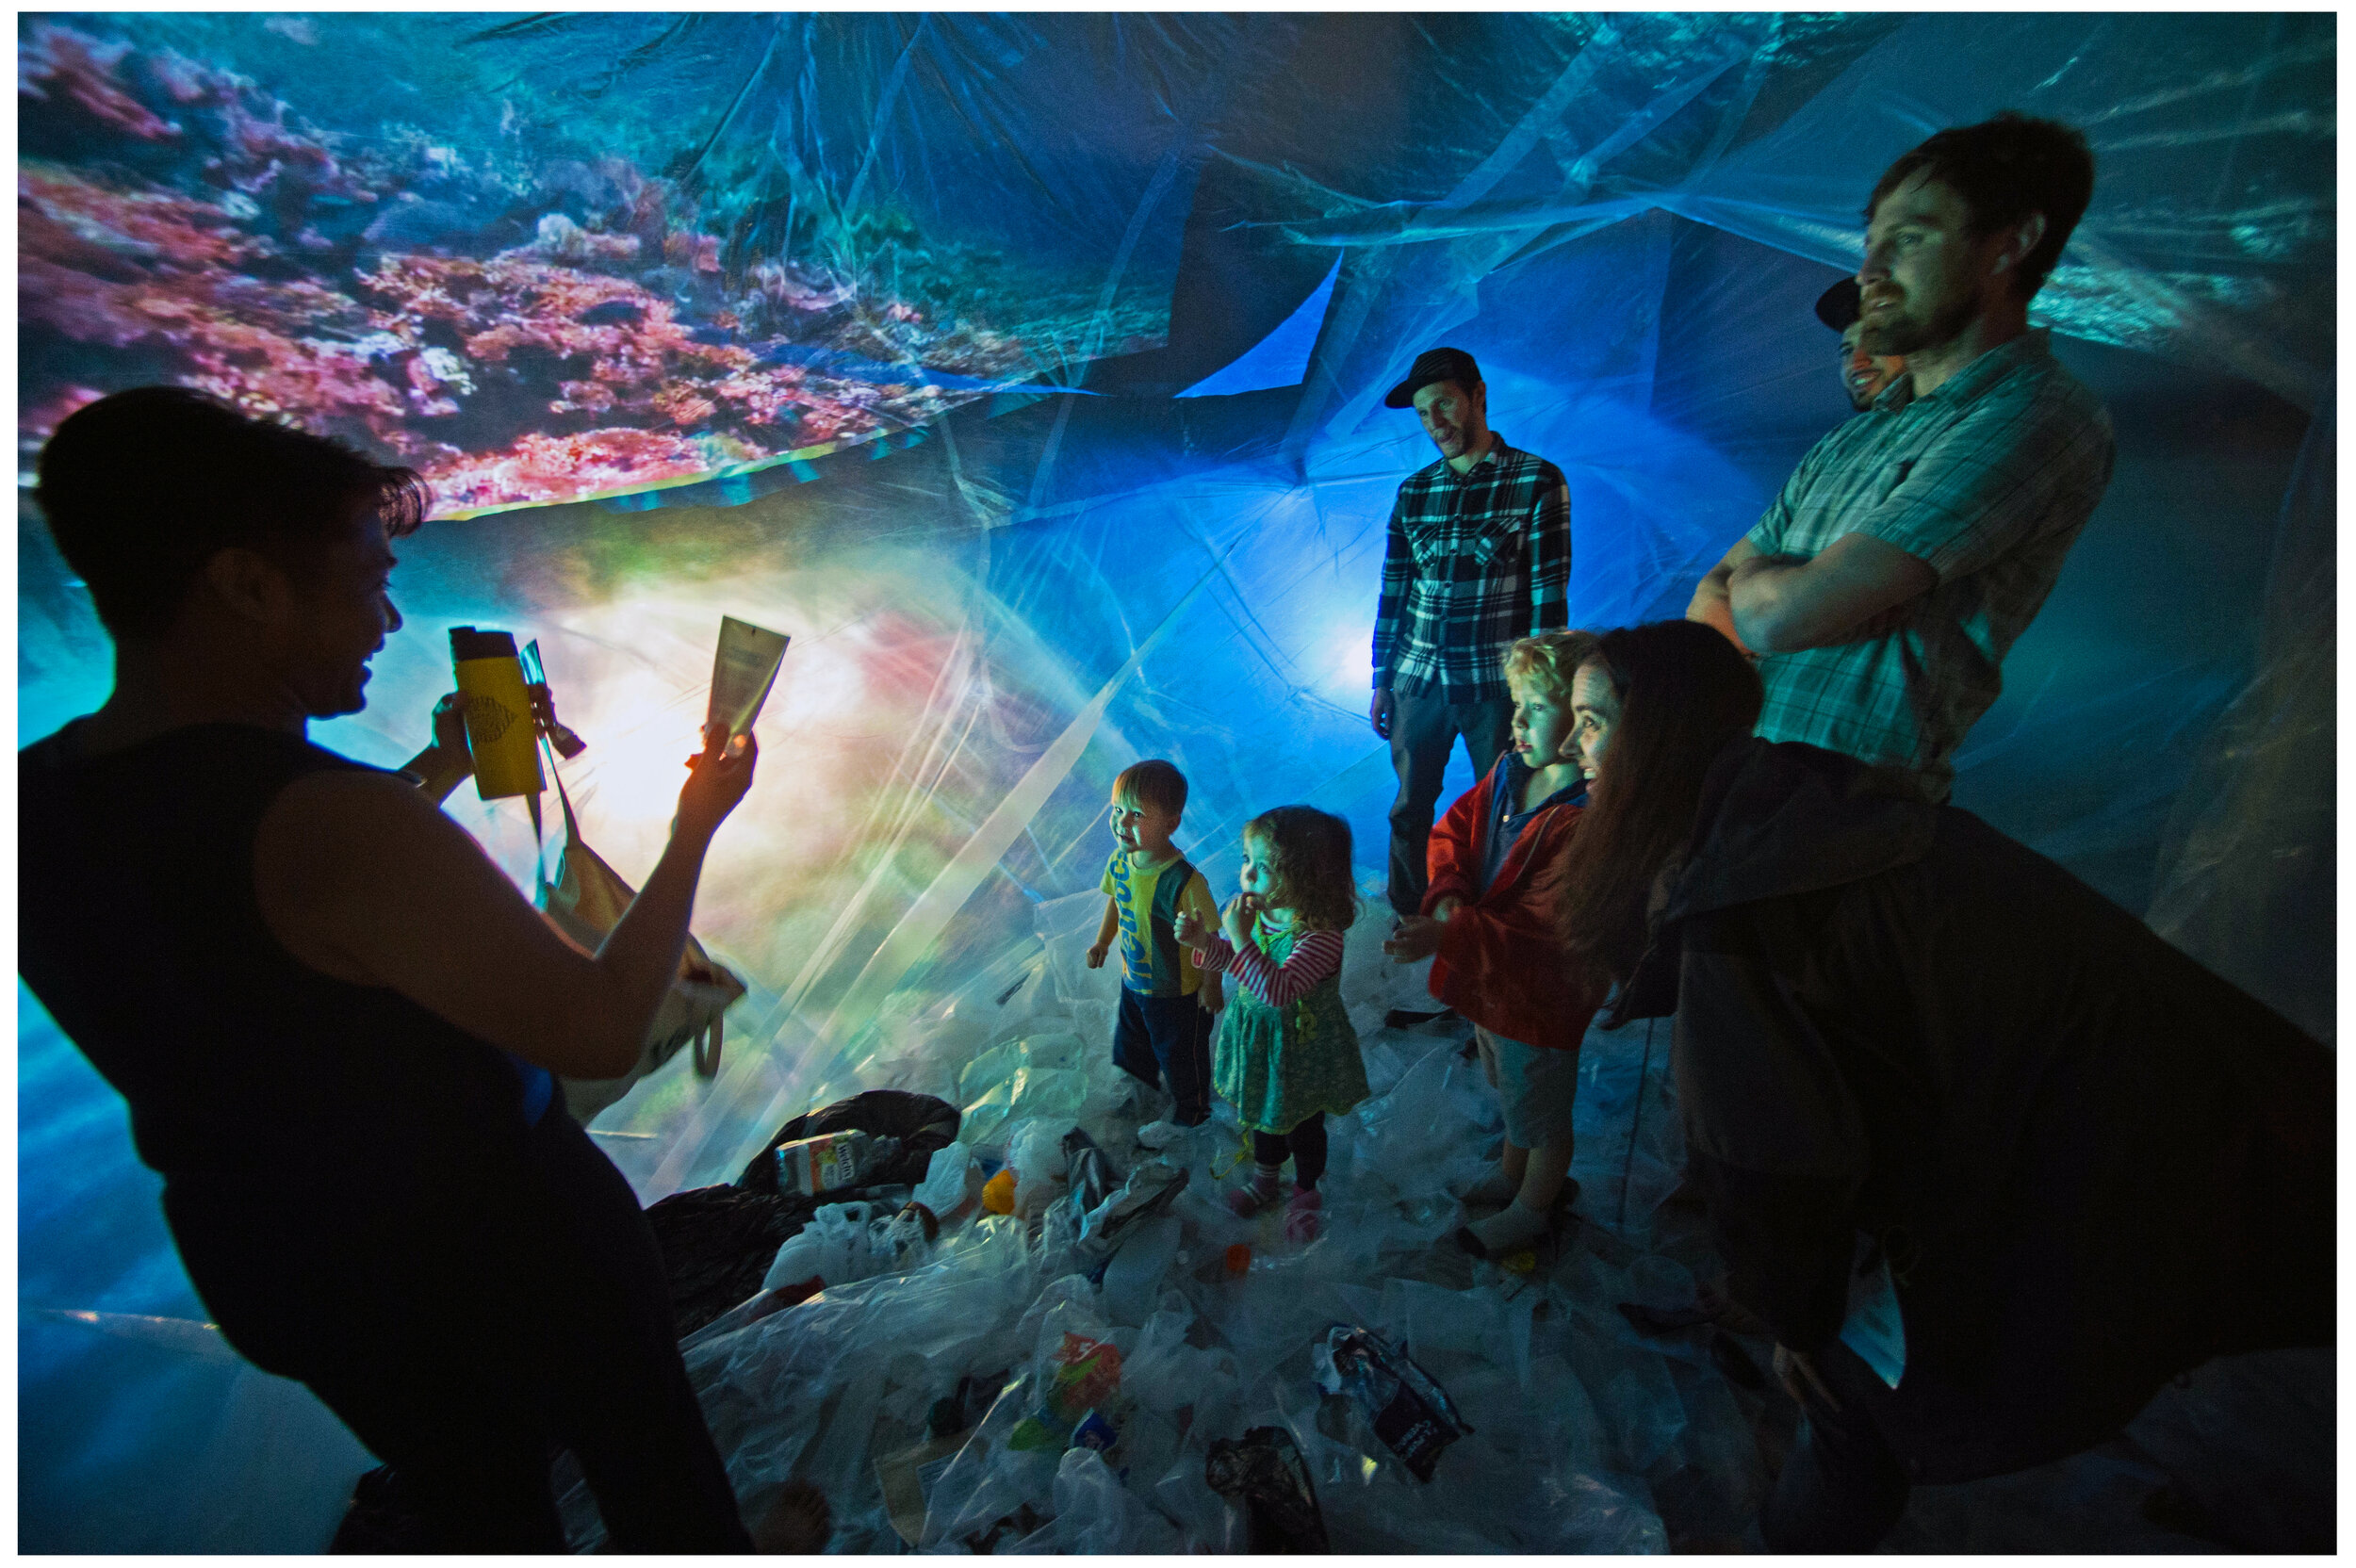 PLASTICITY PROJECT - Interactive and immersive installations that dynamically merge art and science to educate the public about marine biodiversity and plastic pollution.